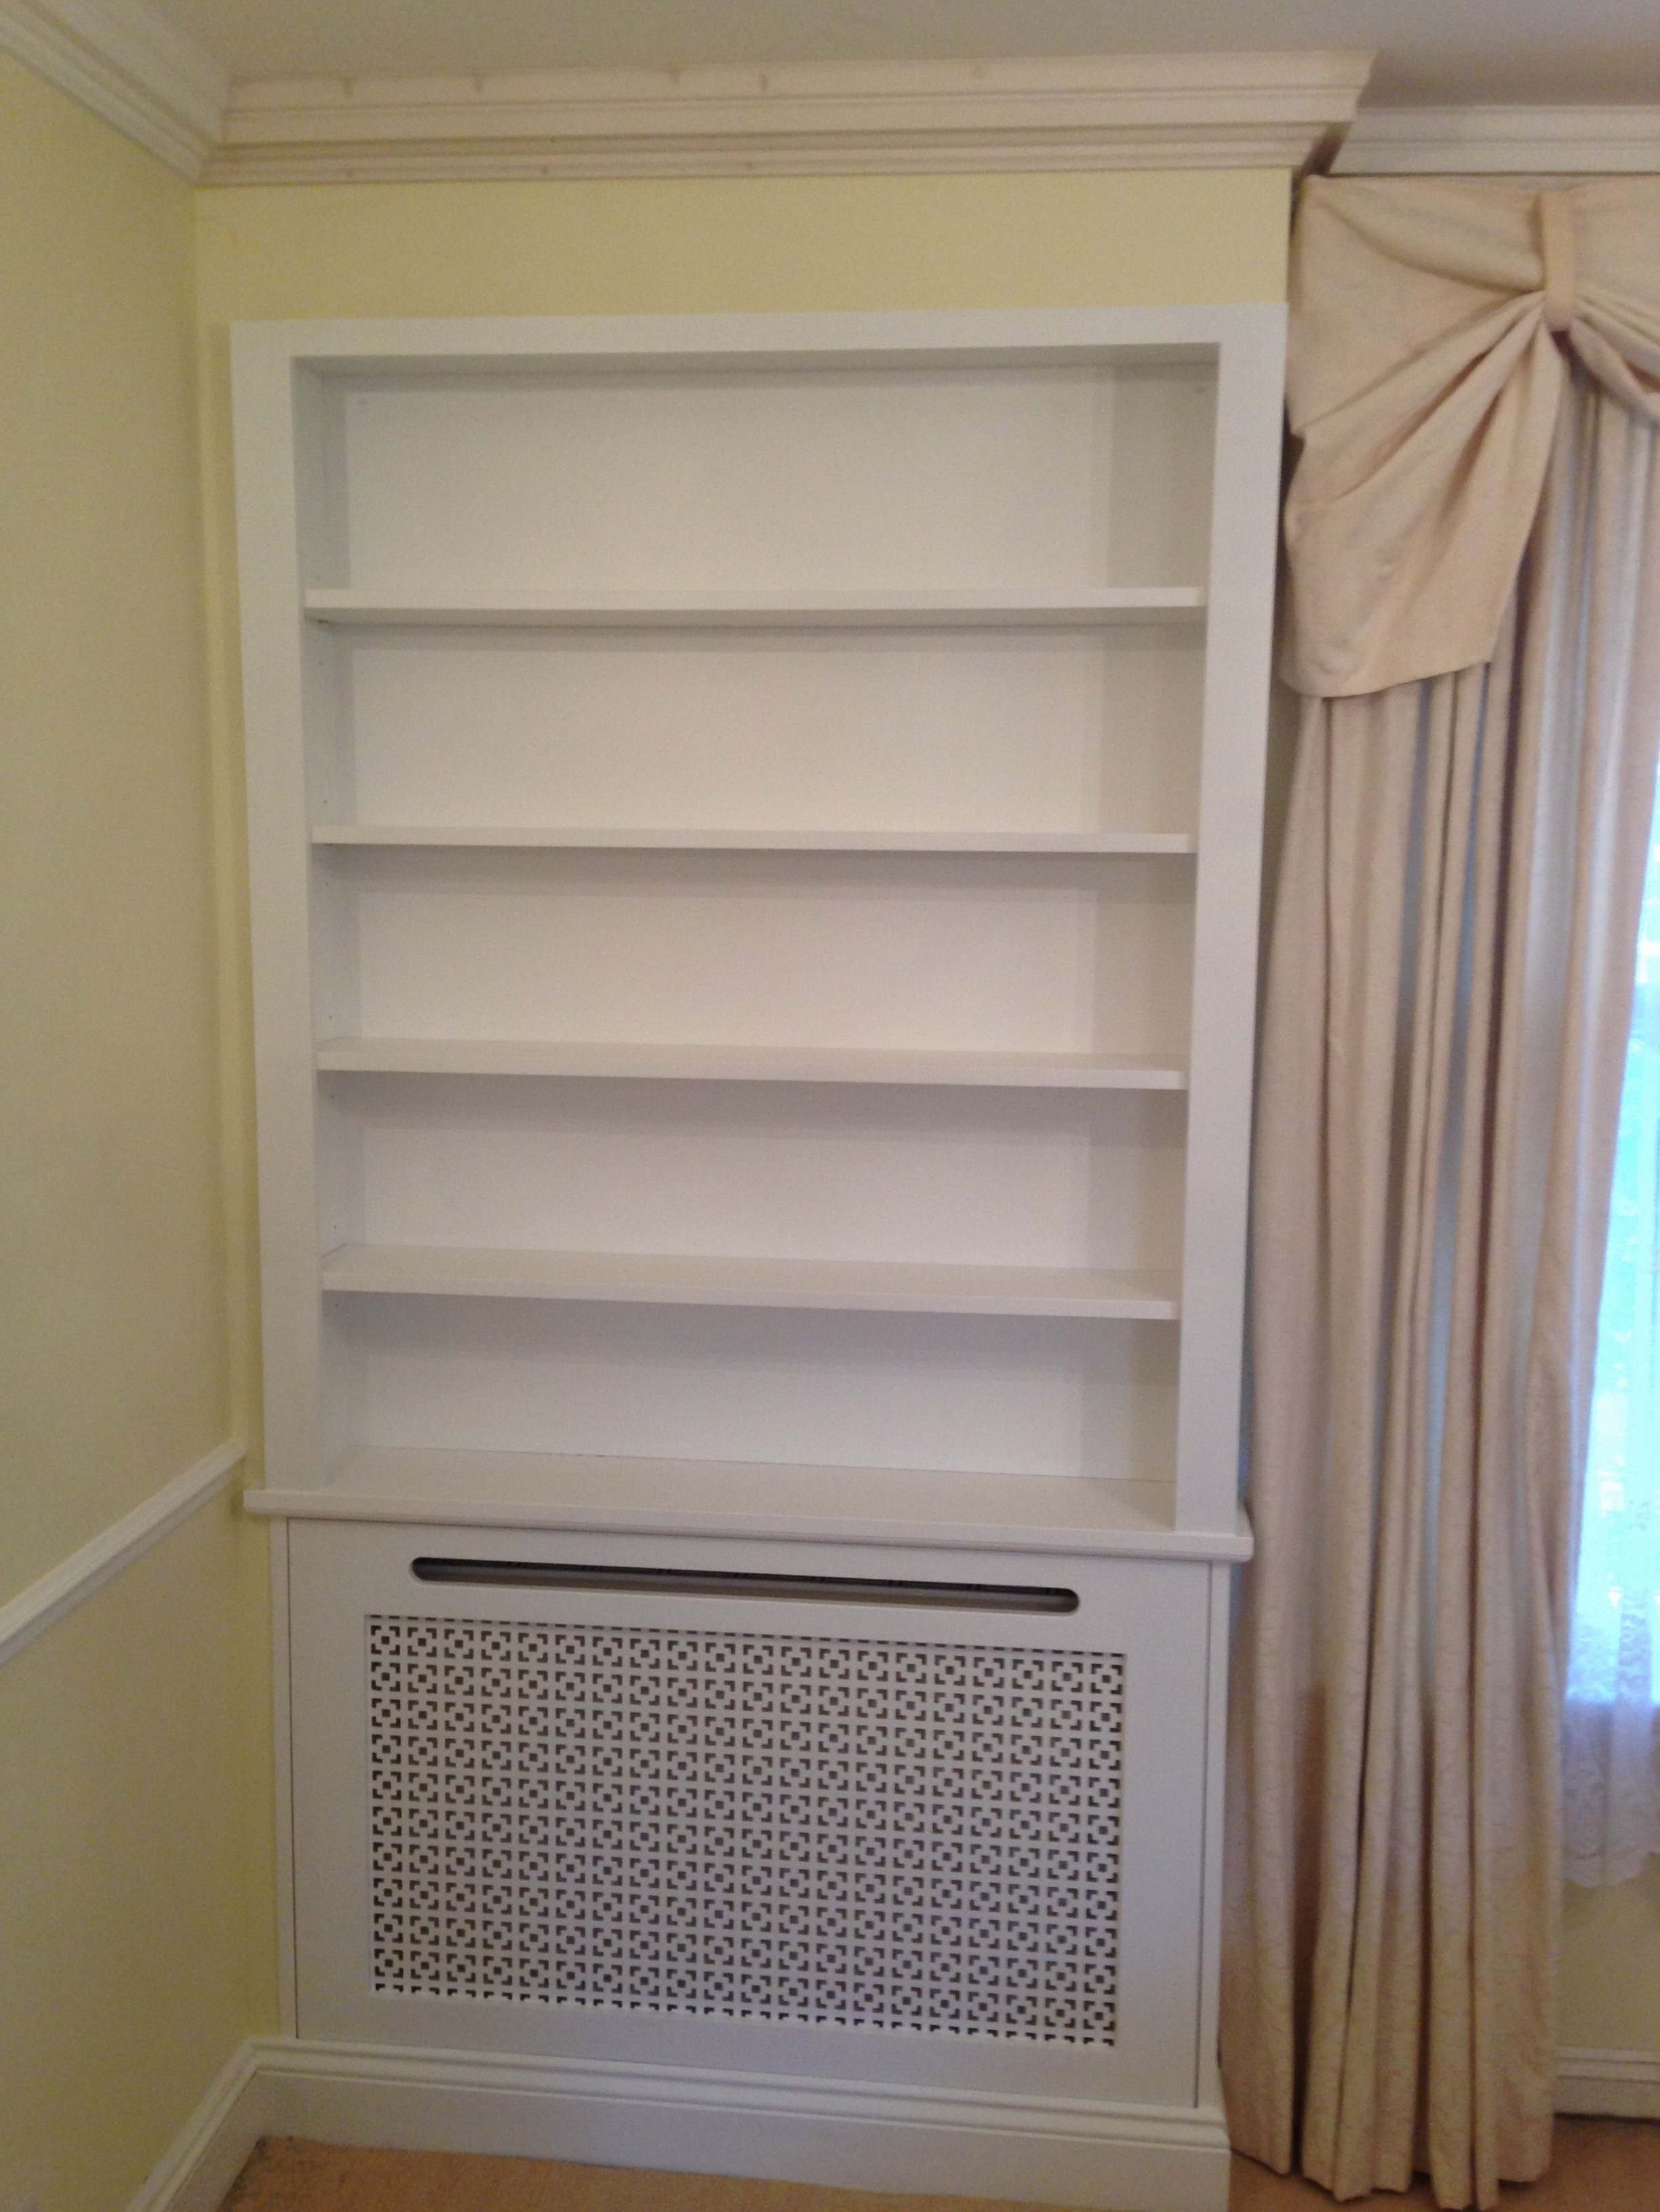 Most Current Radiator Cover Bookshelves With Radiator Cover Bookcase – Harrow Builders And Bespoke Joinery – Lj (View 7 of 15)